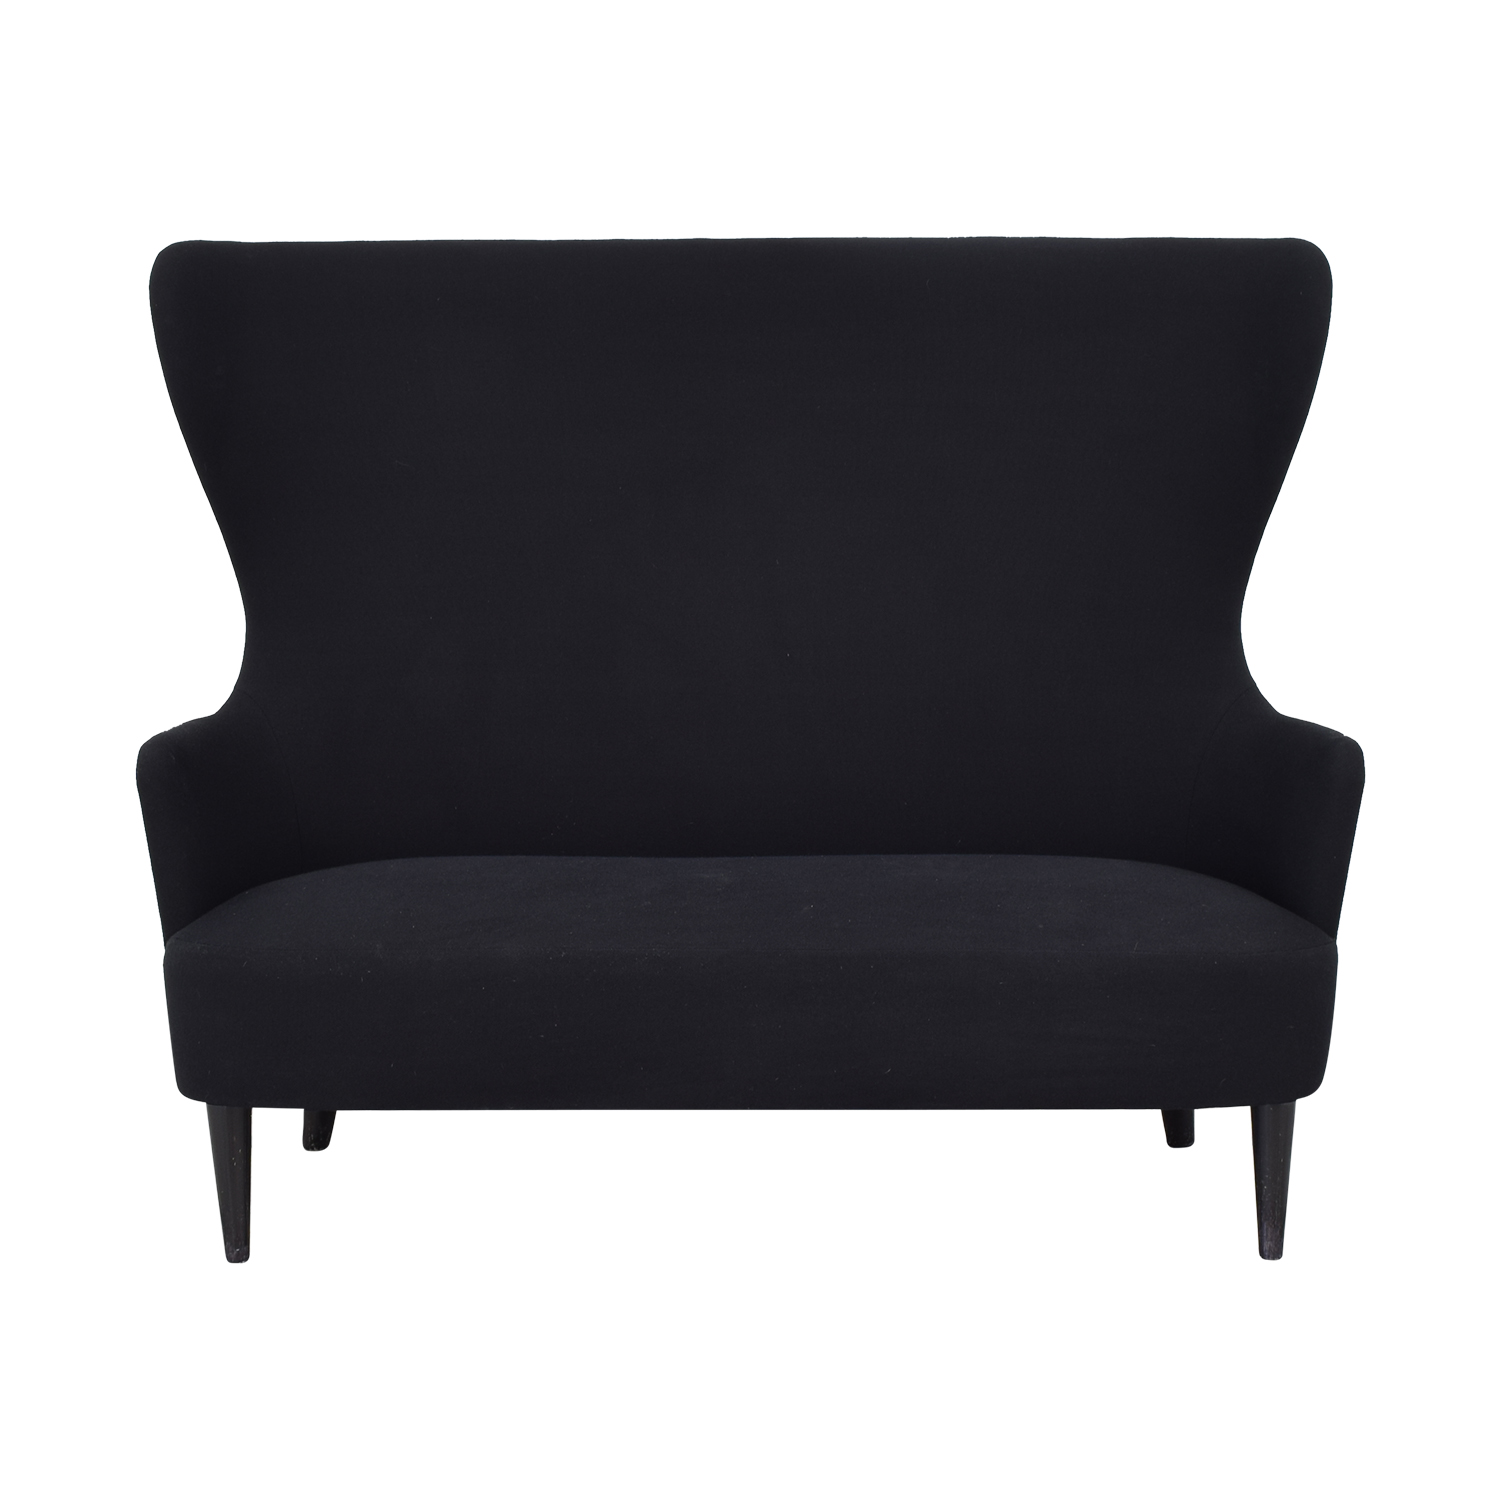 buy Tom Dixon Wingback Black Leg Hallingdal 65 Sofa Tom Dixon Loveseats